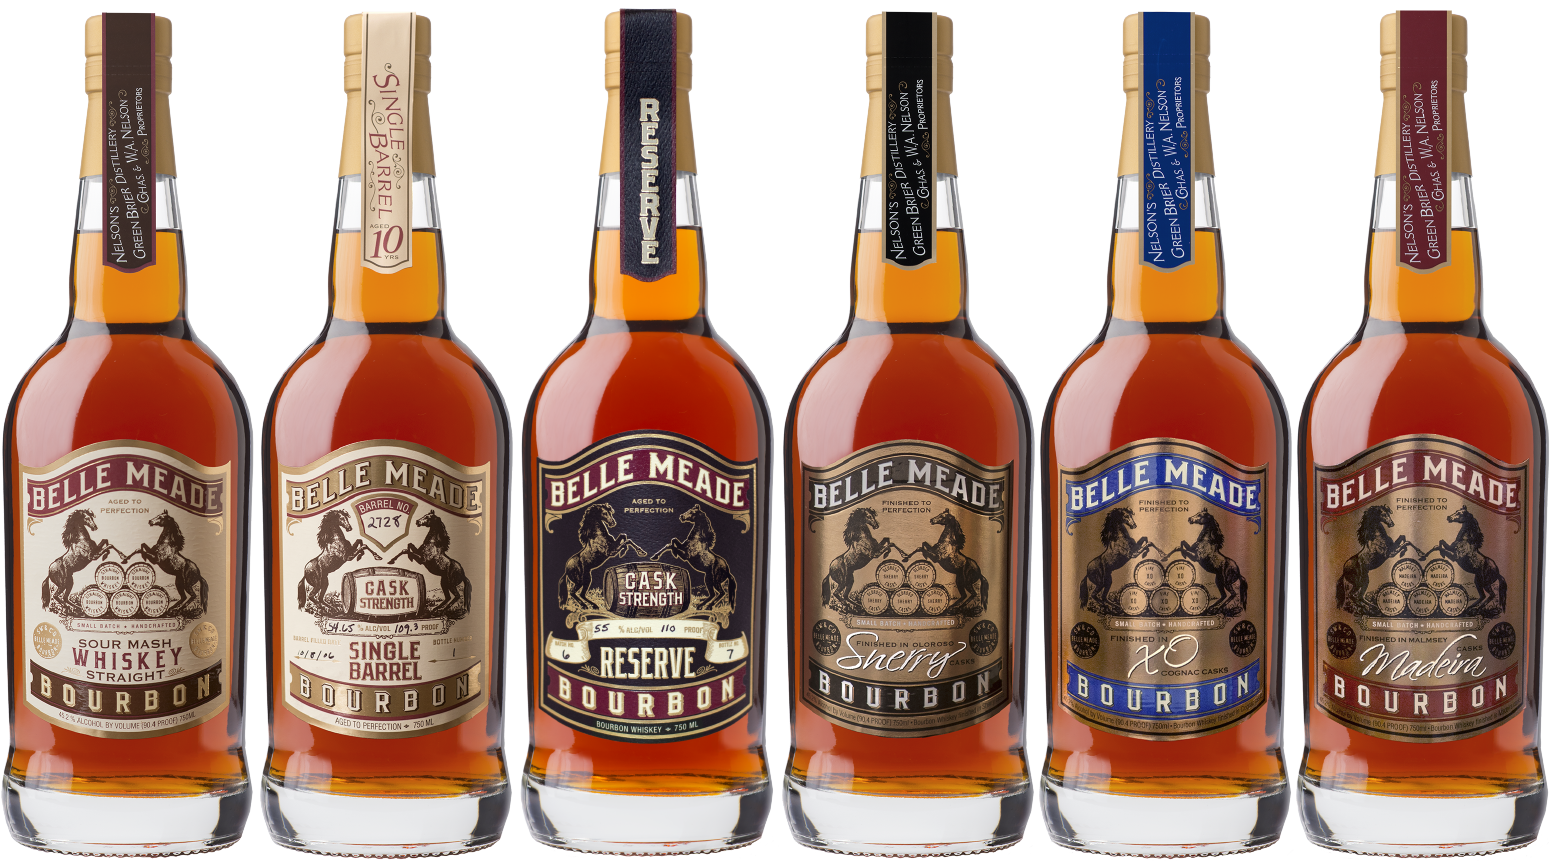 Belle Meade Bourbon Family of Products